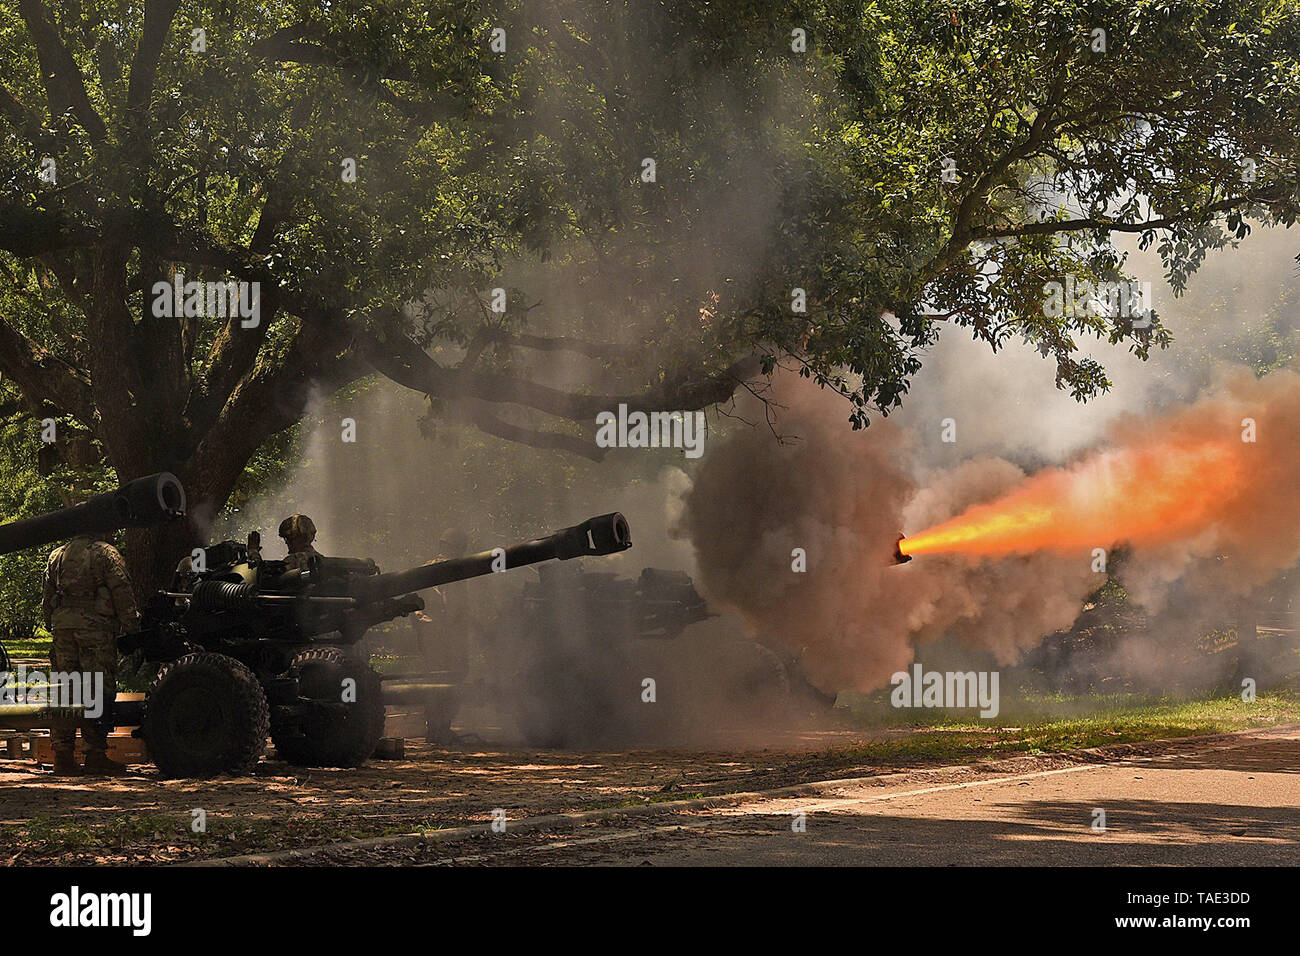 The Louisiana National Guard's 1st Battalion, 141st Field Artillery Regiment fires a Howitzer as part of a 19 cannon salute for Gov. John Bel Edwards at a ceremony dedicating a monument memorializing fallen Louisiana Guardsmen at Louisiana Veterans Memorial Park in Baton Rouge, Louisiana, May 21, 2019. (U.S. Army National Guard photo by Staff Sgt. Garrett L. Dipuma) - Stock Image